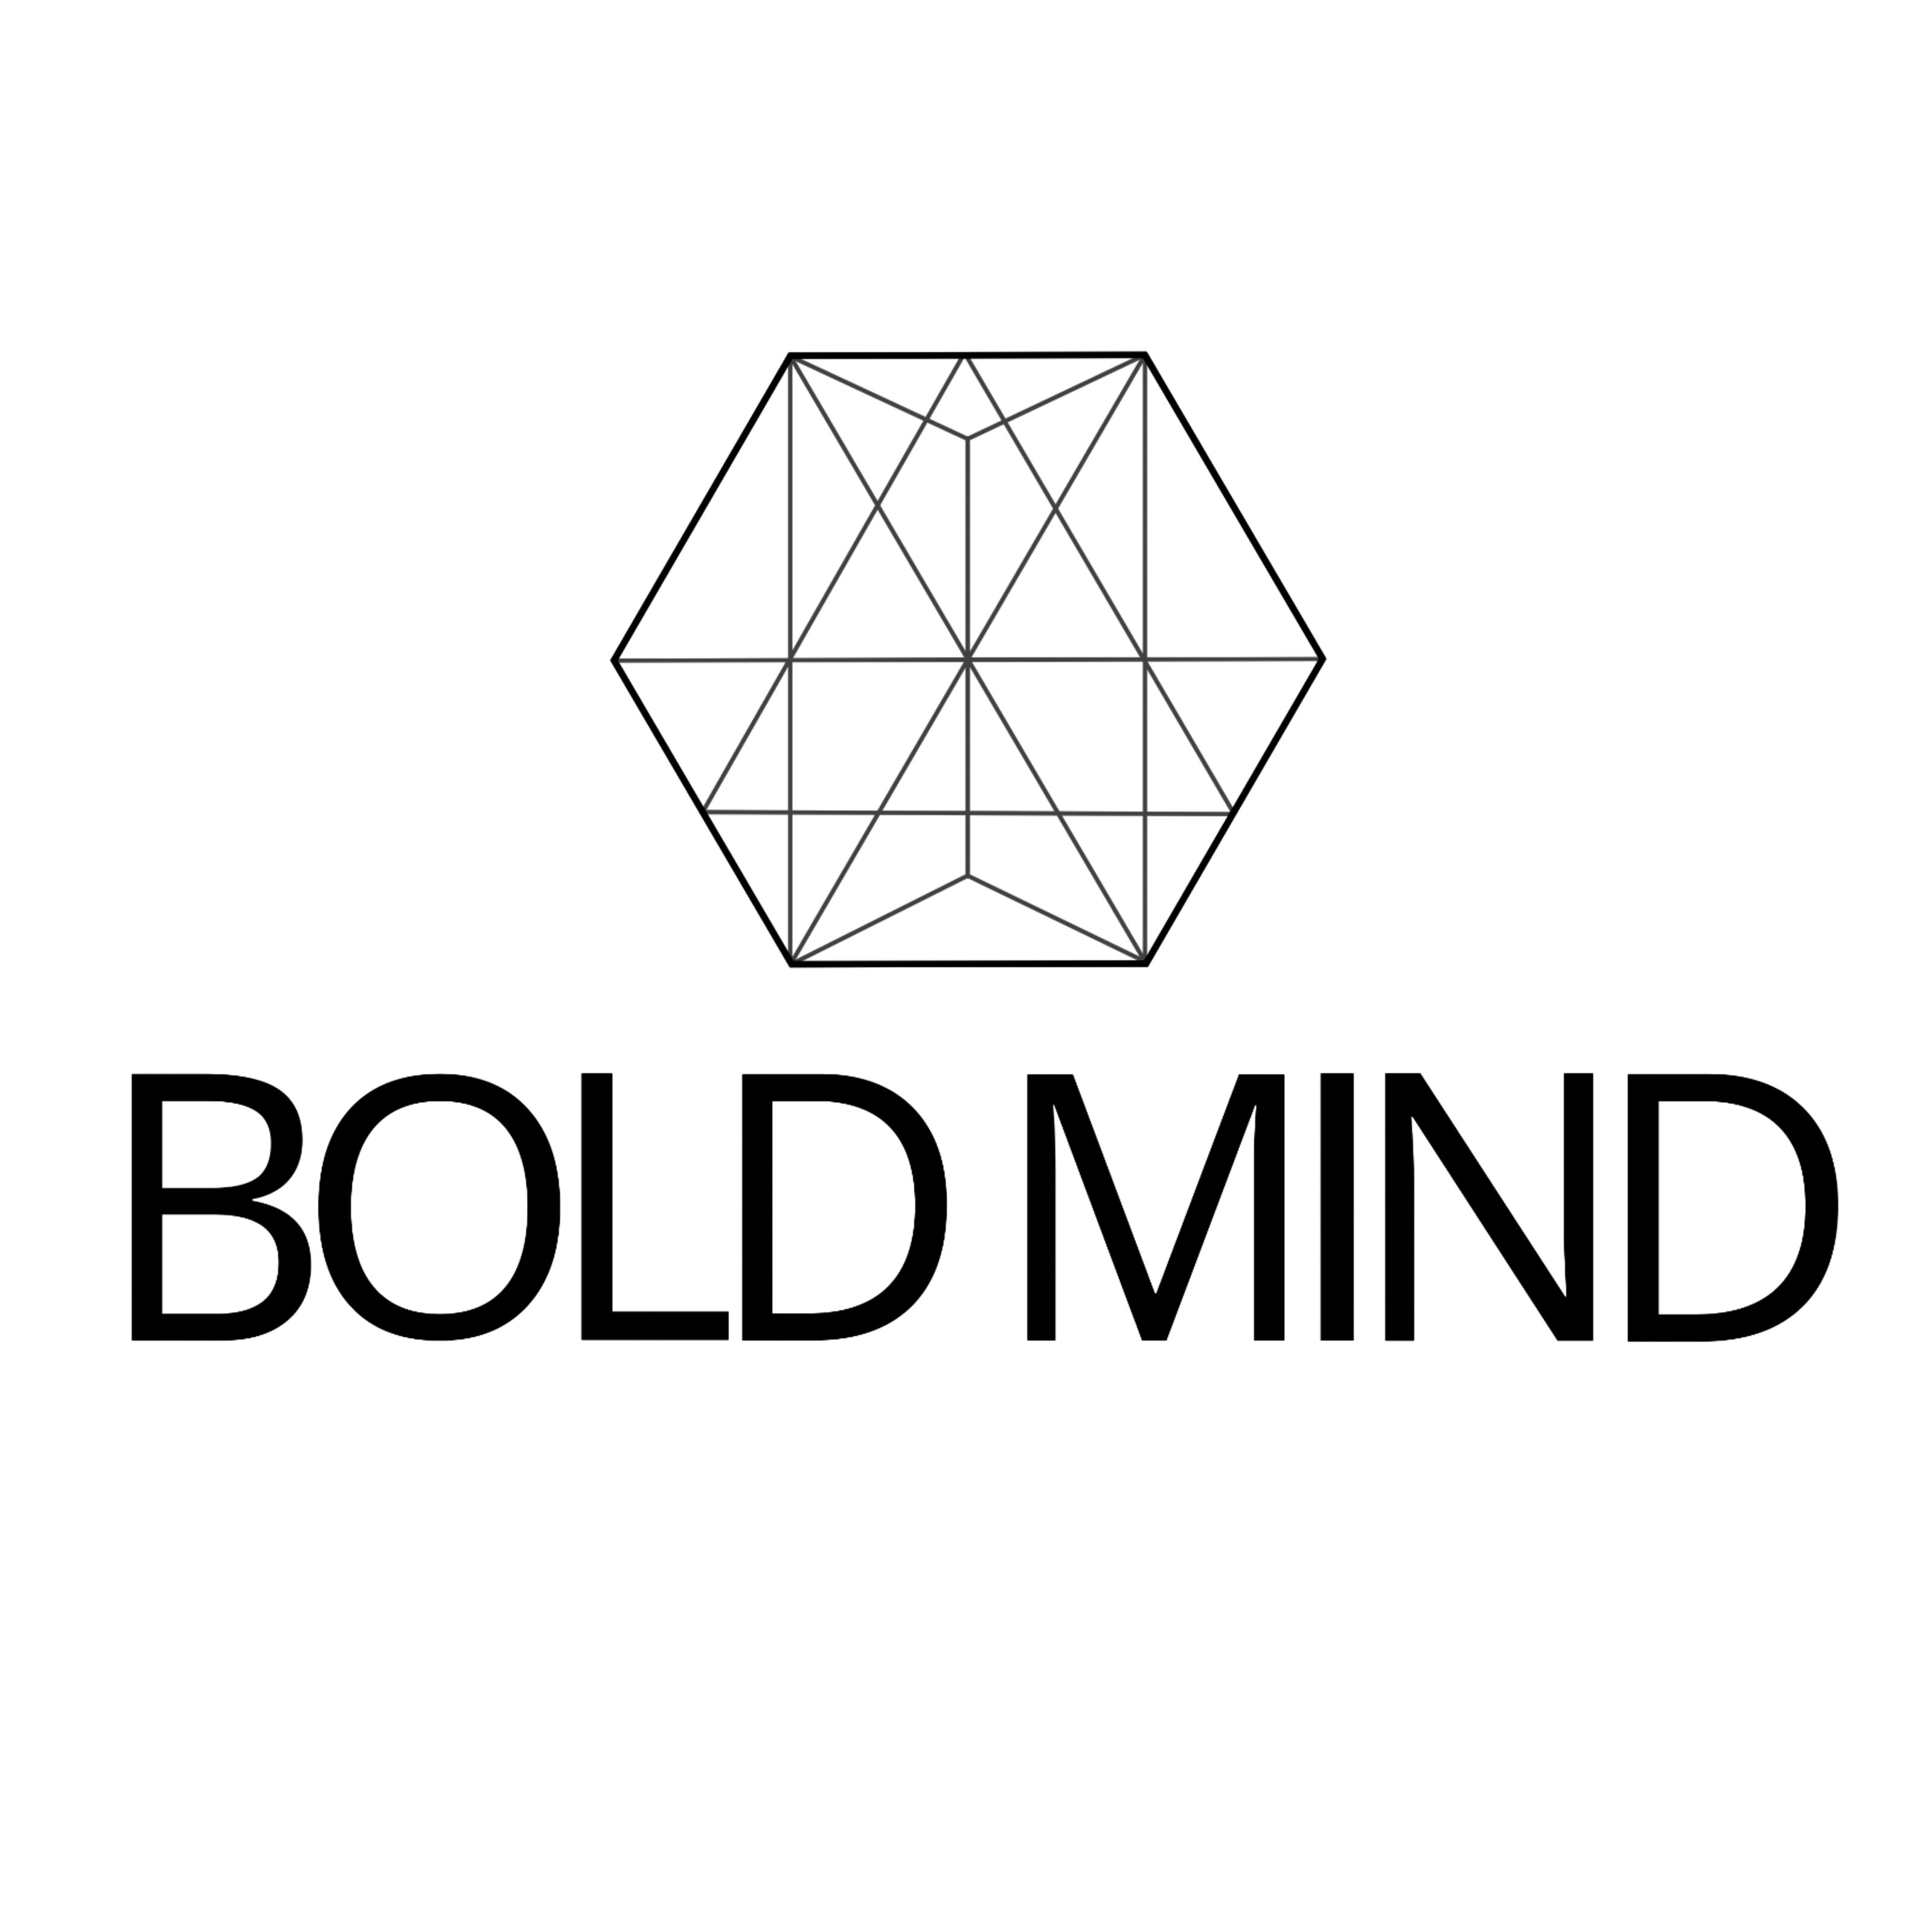 Read Boldmind Reviews